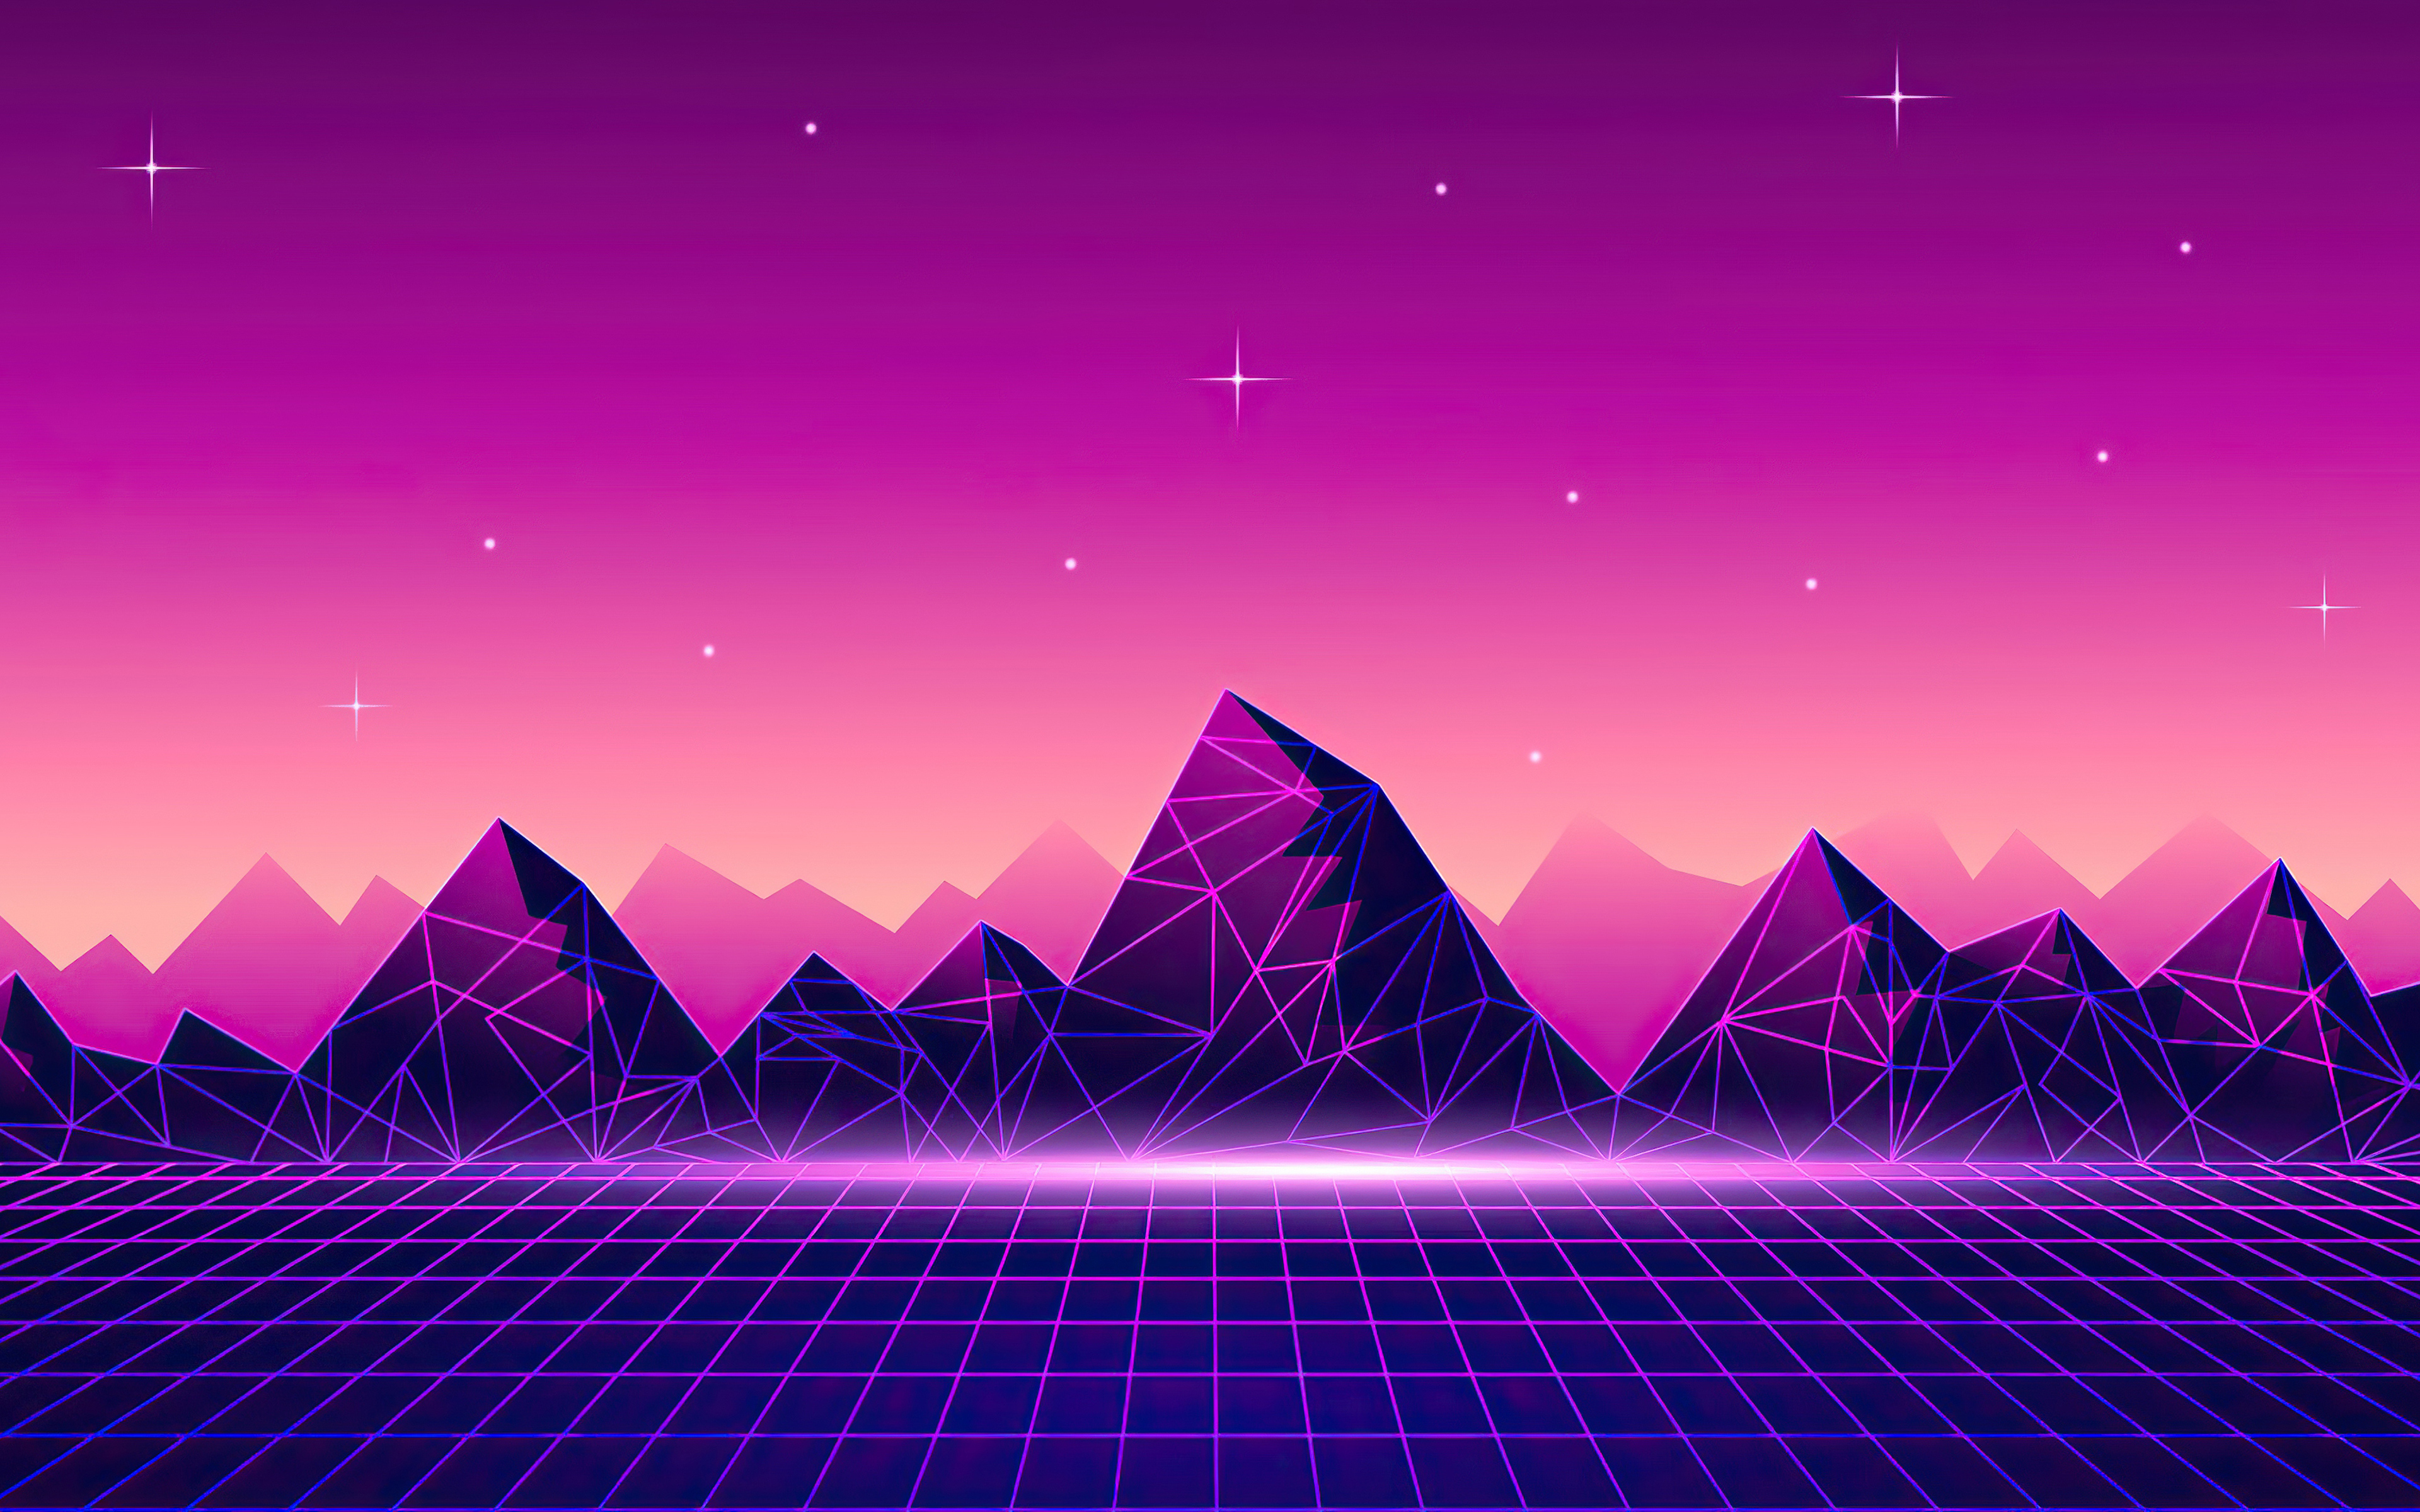 3840x2400 Synthwave Pyramid 4k 4k HD 4k Wallpapers, Images ...